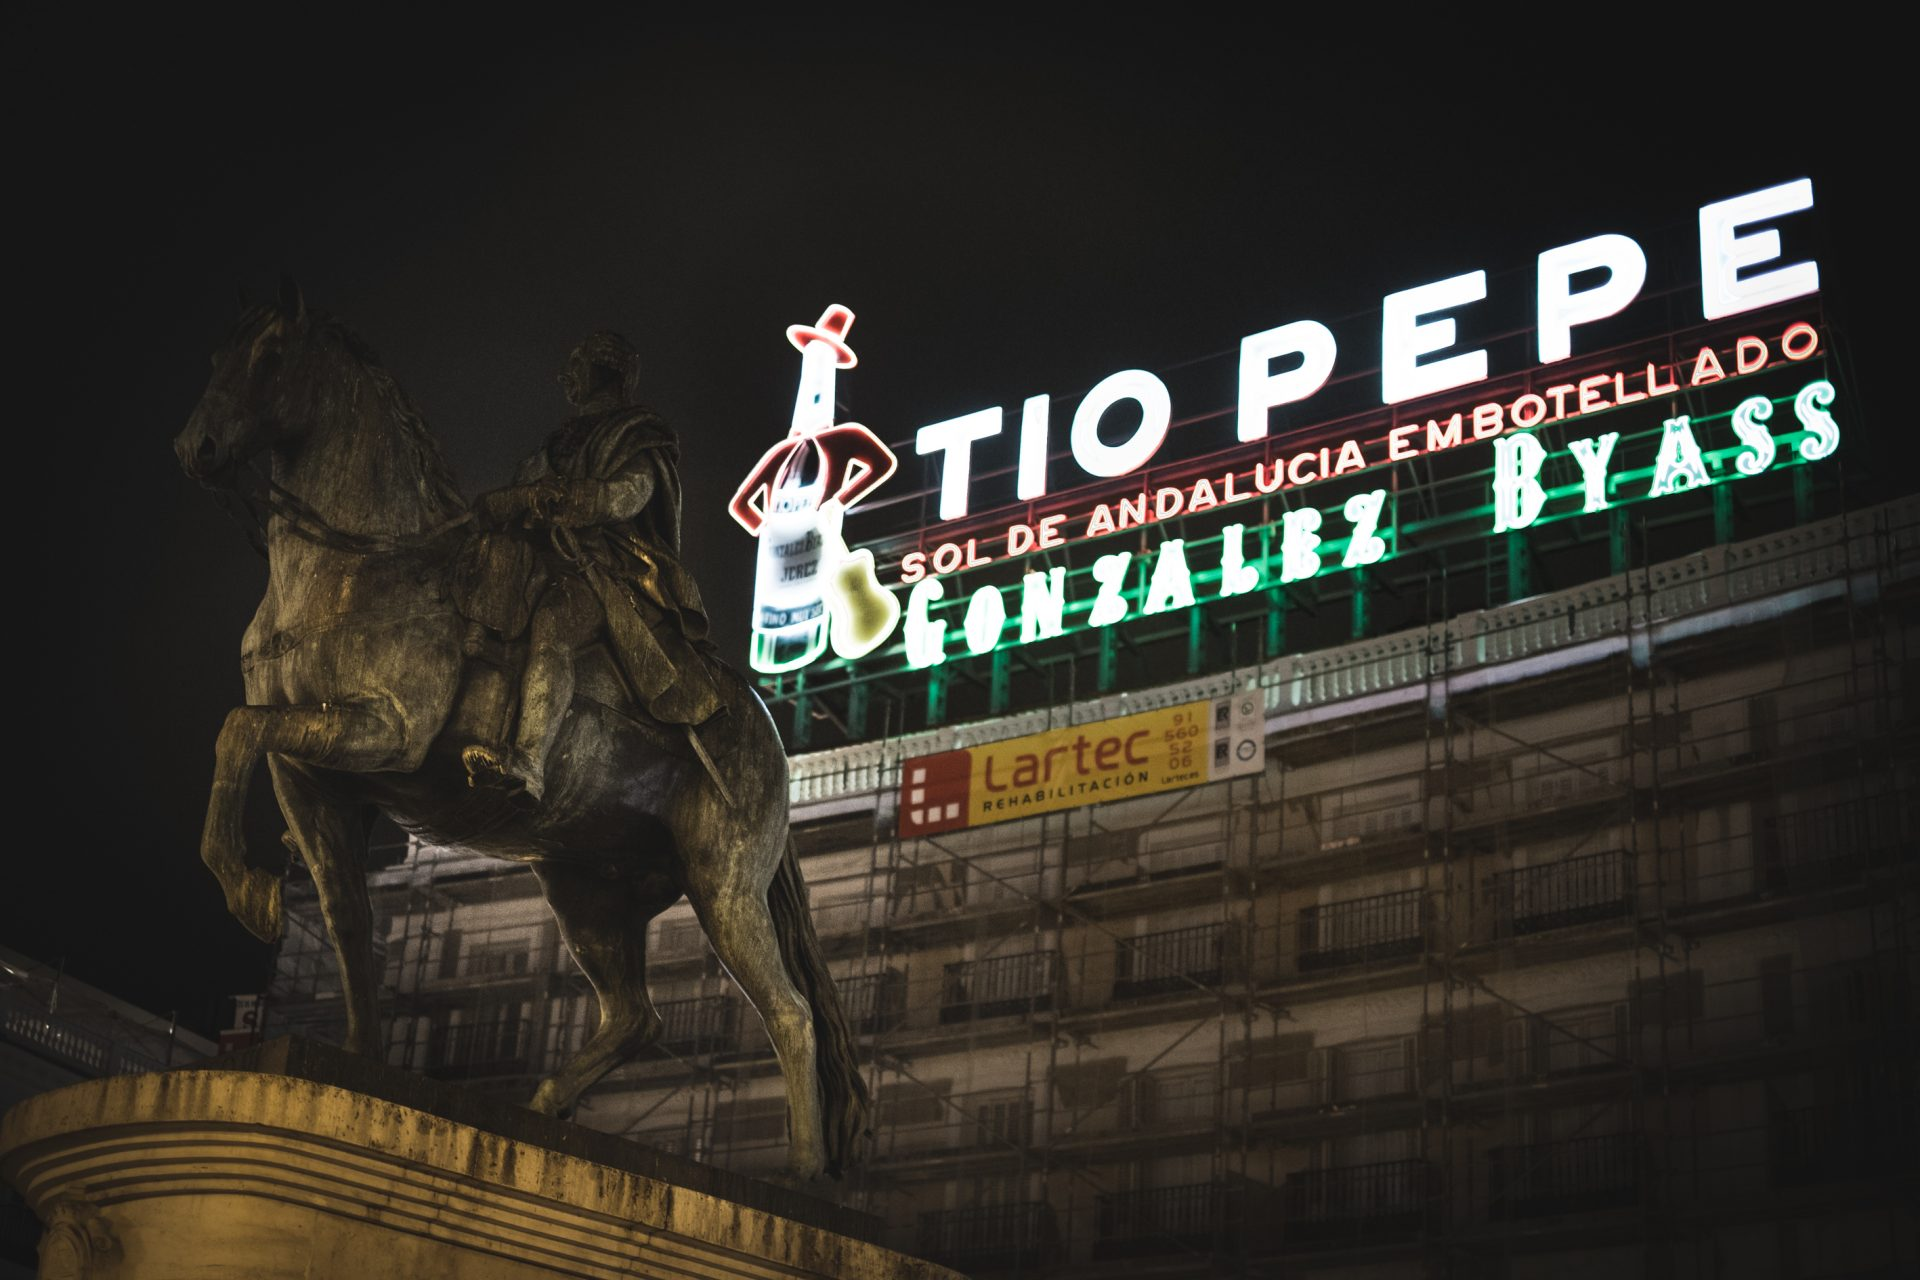 Tio pepe and the statue in madrid photo by Jo Kassis